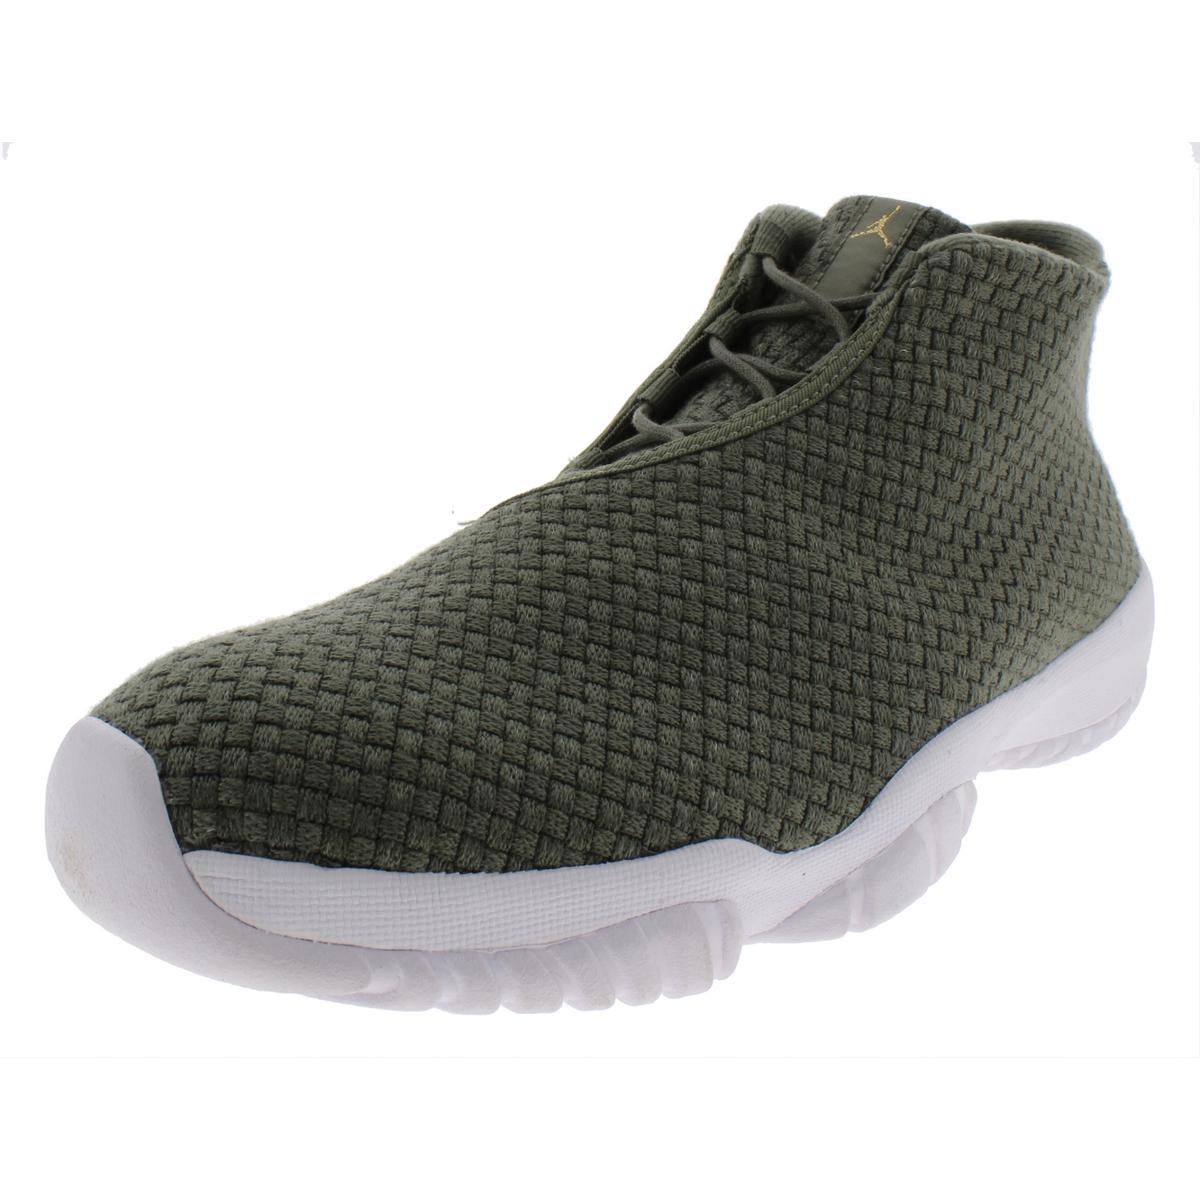 outlet store 3bafb 830f2 Details about Jordan Mens Air Jordan Future High Top Trainer Casual Shoes  Athletic BHFO 4097